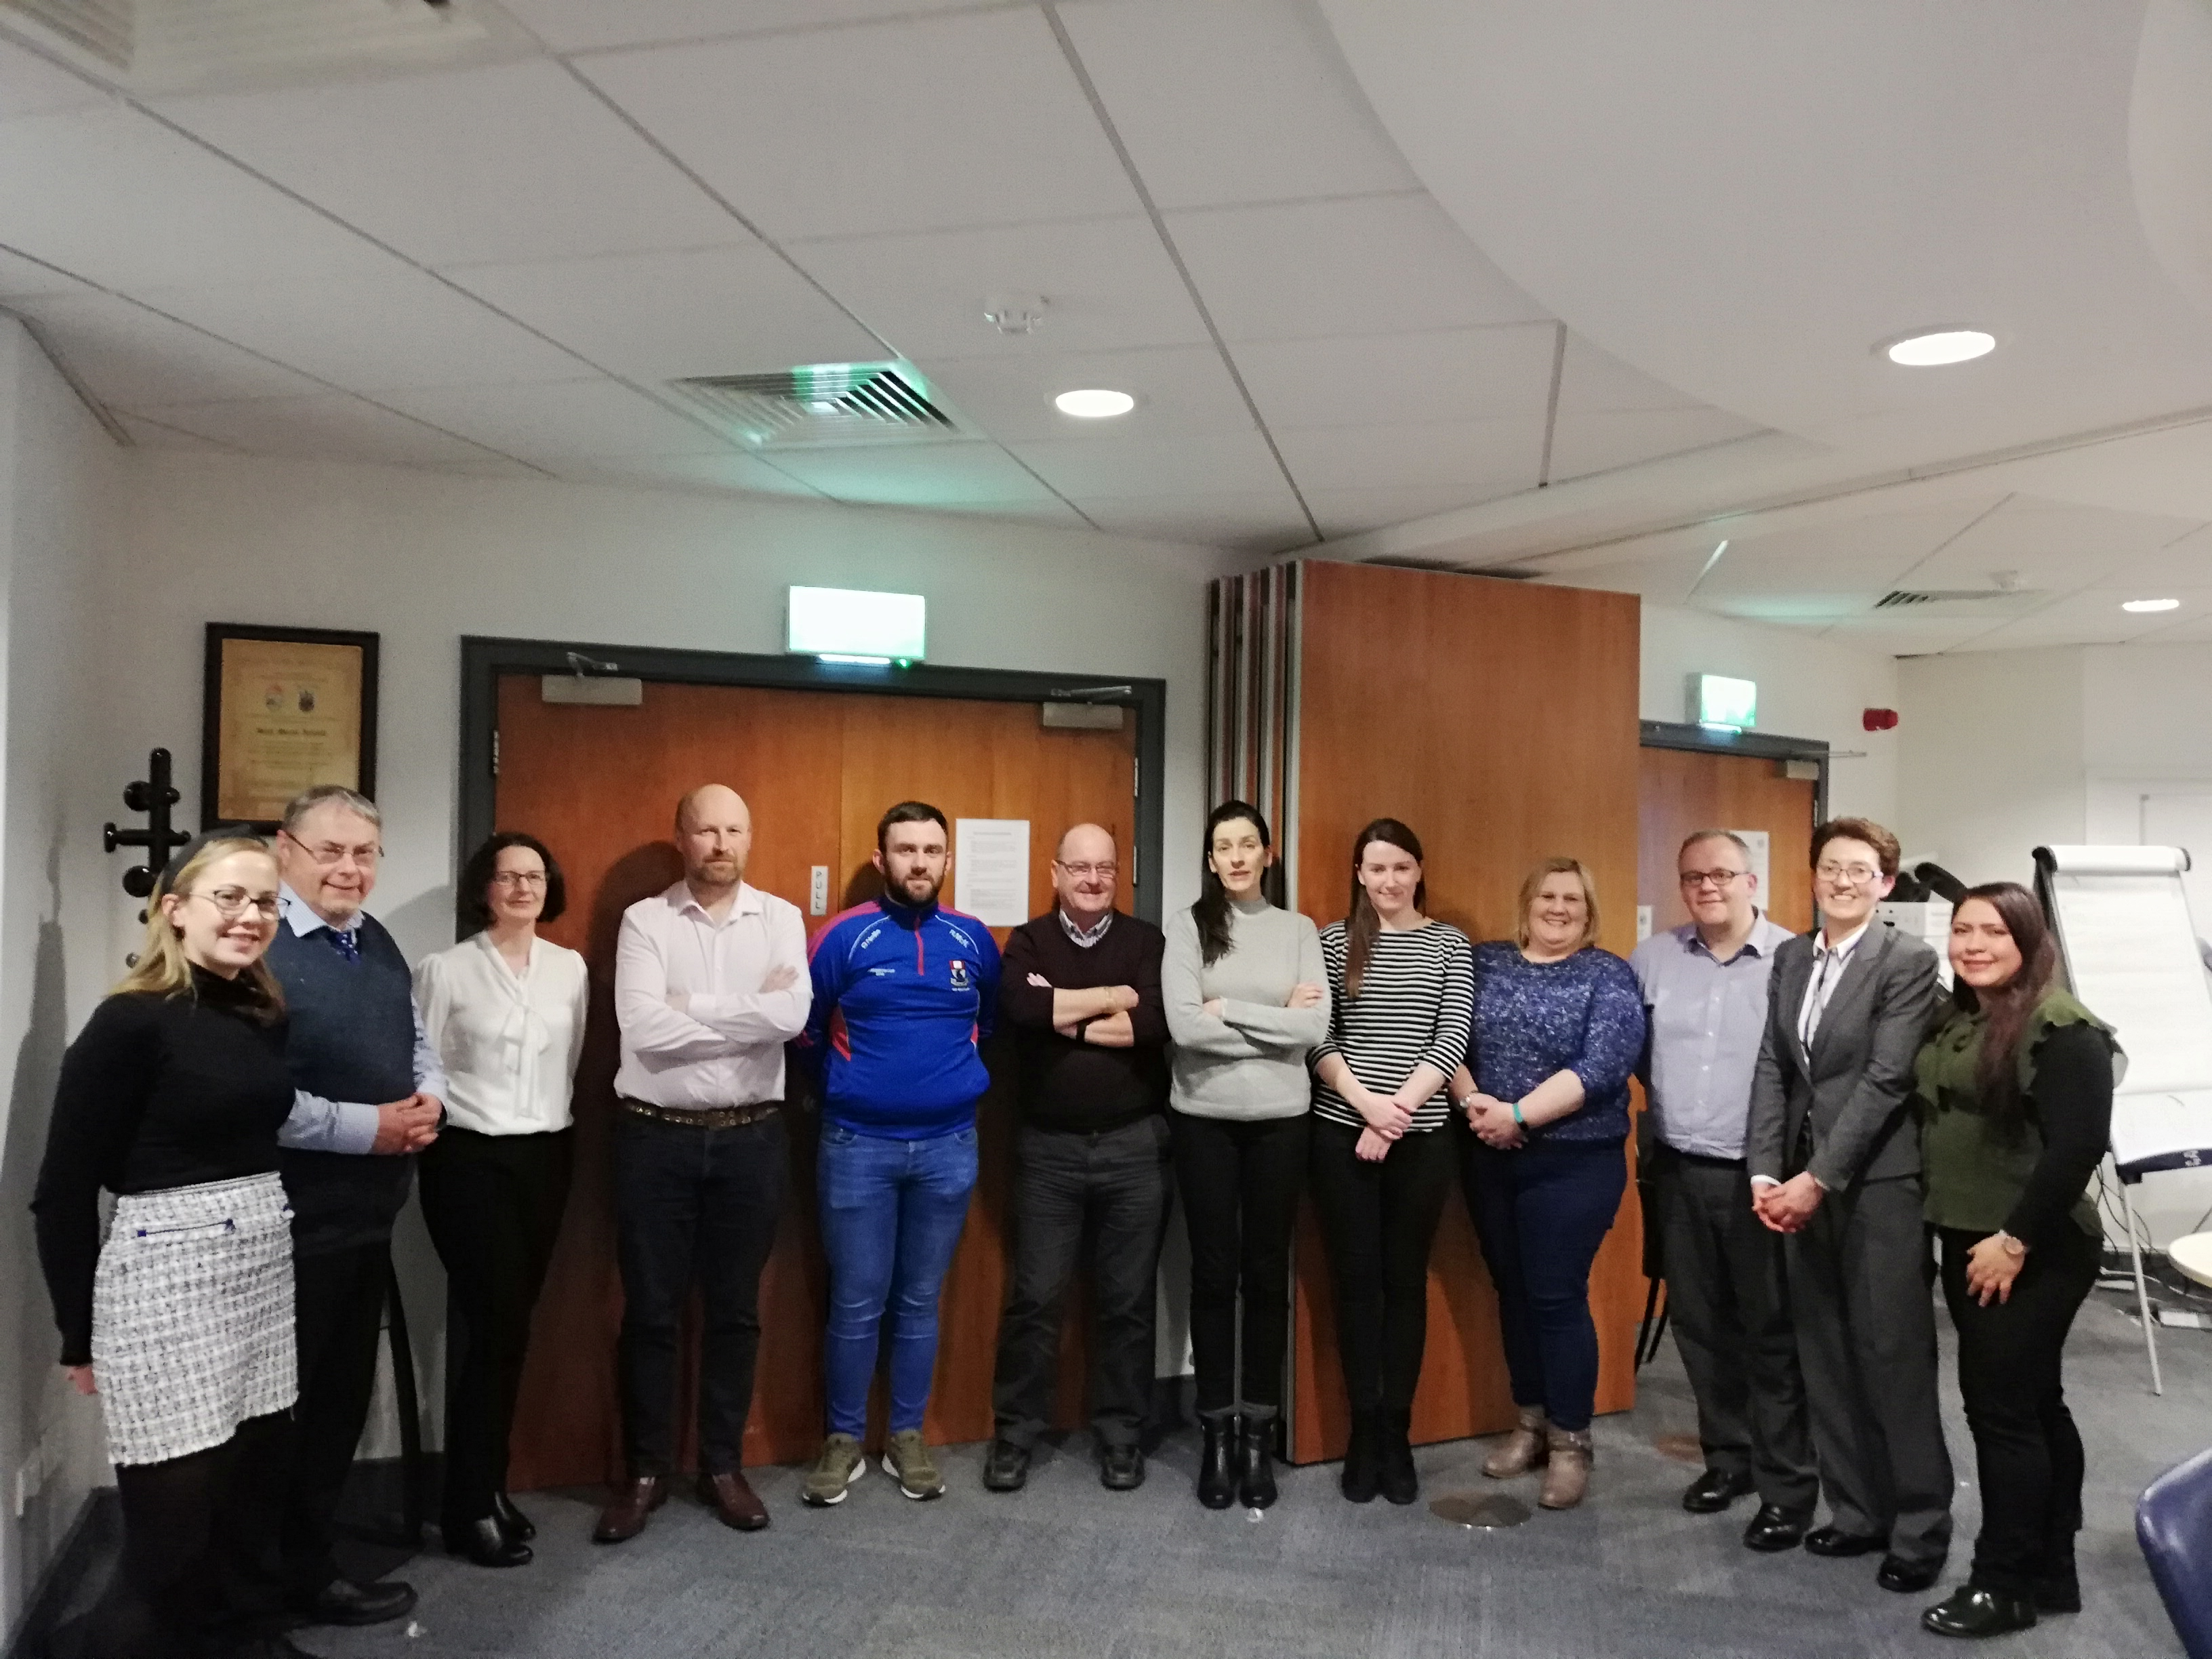 Pictured here in the photo are some of the current students along with Mr John Maher, Lecturer in Financial Risk and Regulatory Management (second to left) and Dr Sheila O Donohoe, Programme Director (second to the right).